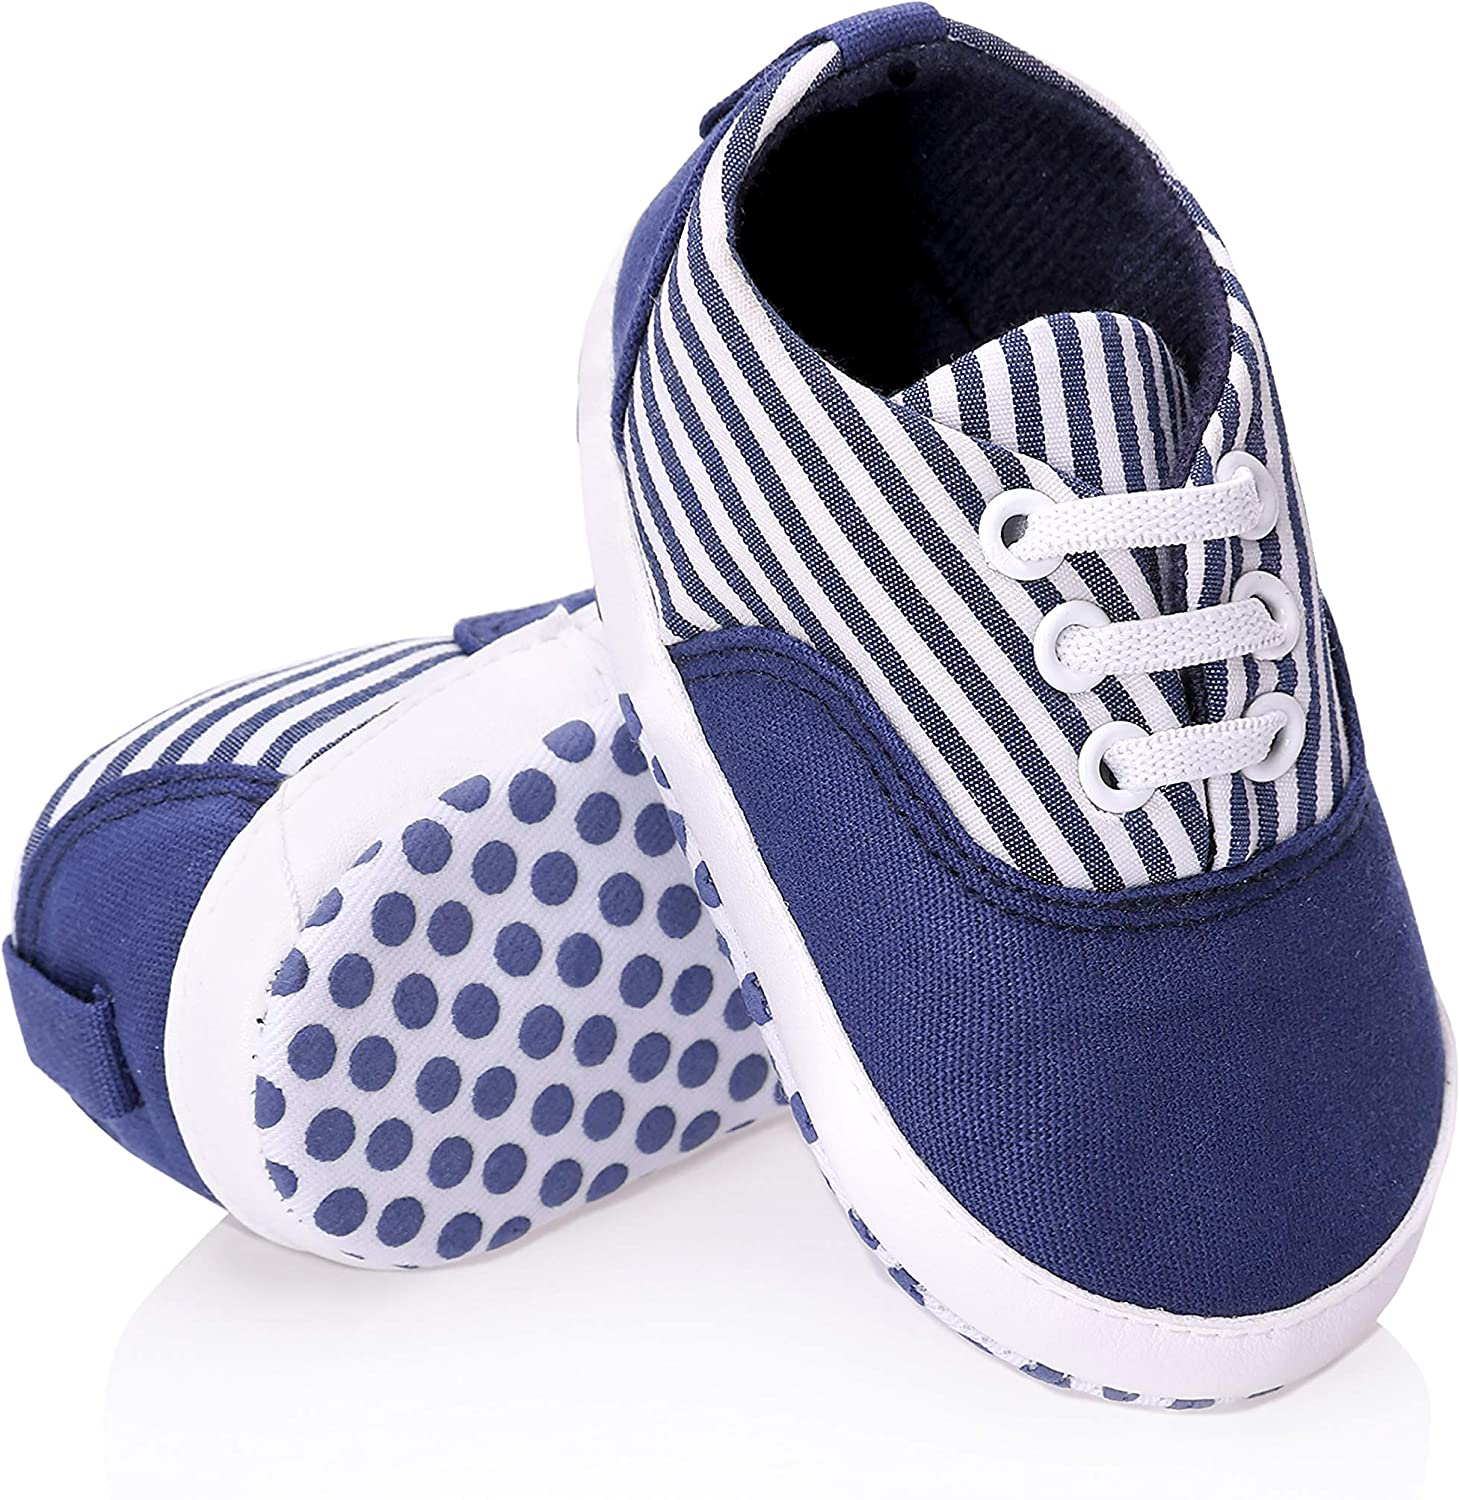 FNOVCO Unisex Baby Sneakers Toddler Boys Girls Anti-Slip First Walkers Canvas Shoes 0-24 Months